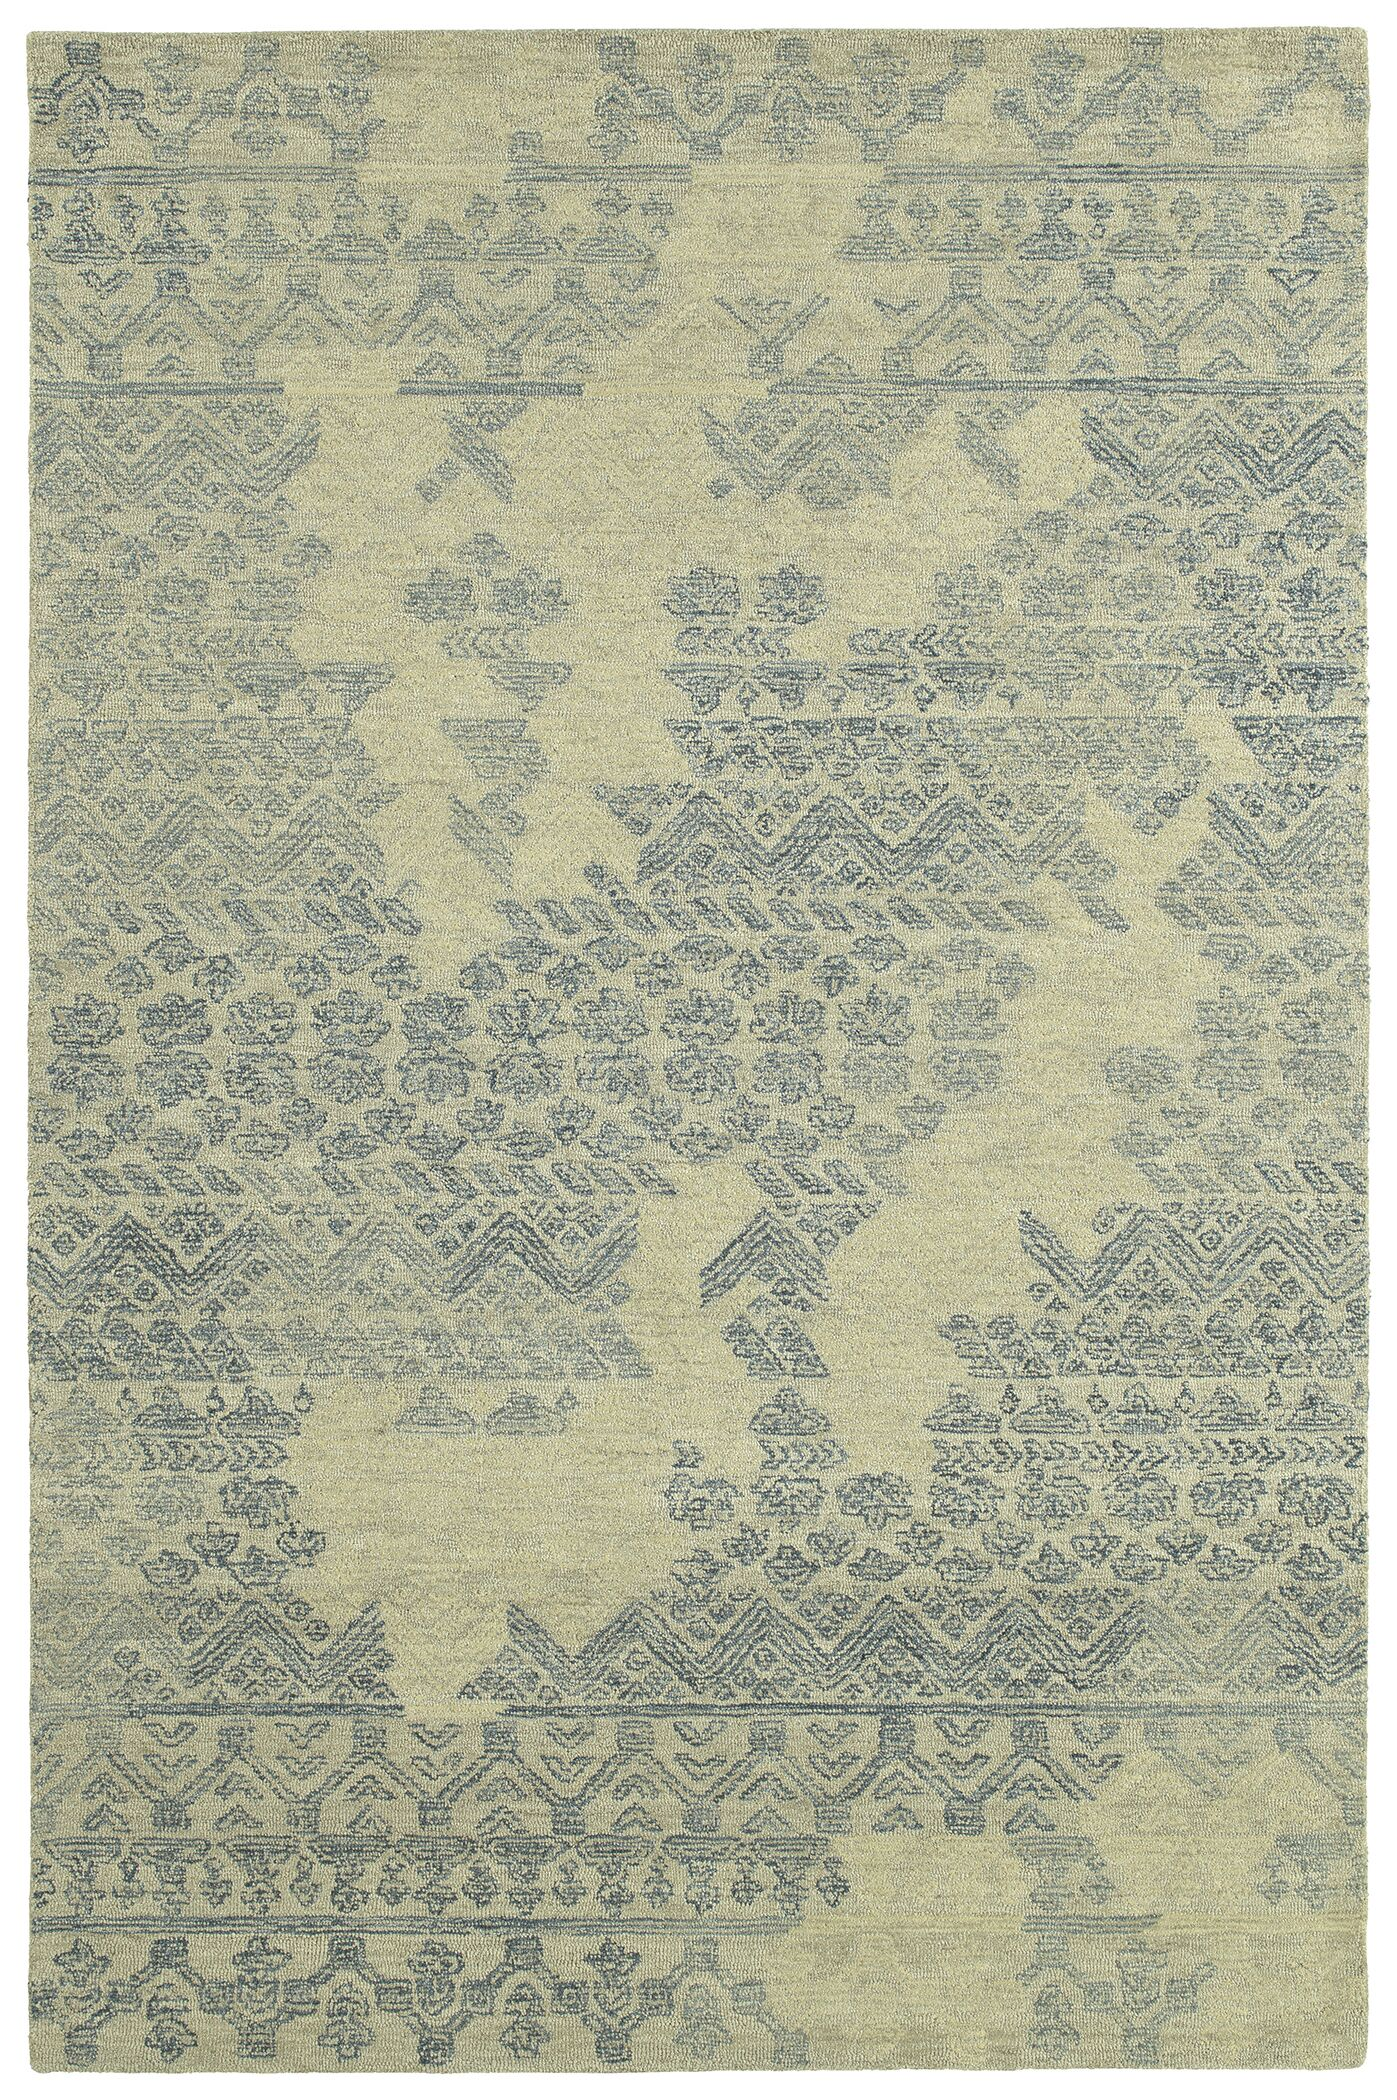 Stockman Hand-Tufted Wool Denim/Beige Area Rug Rug Size: Rectangle 4' x 6'